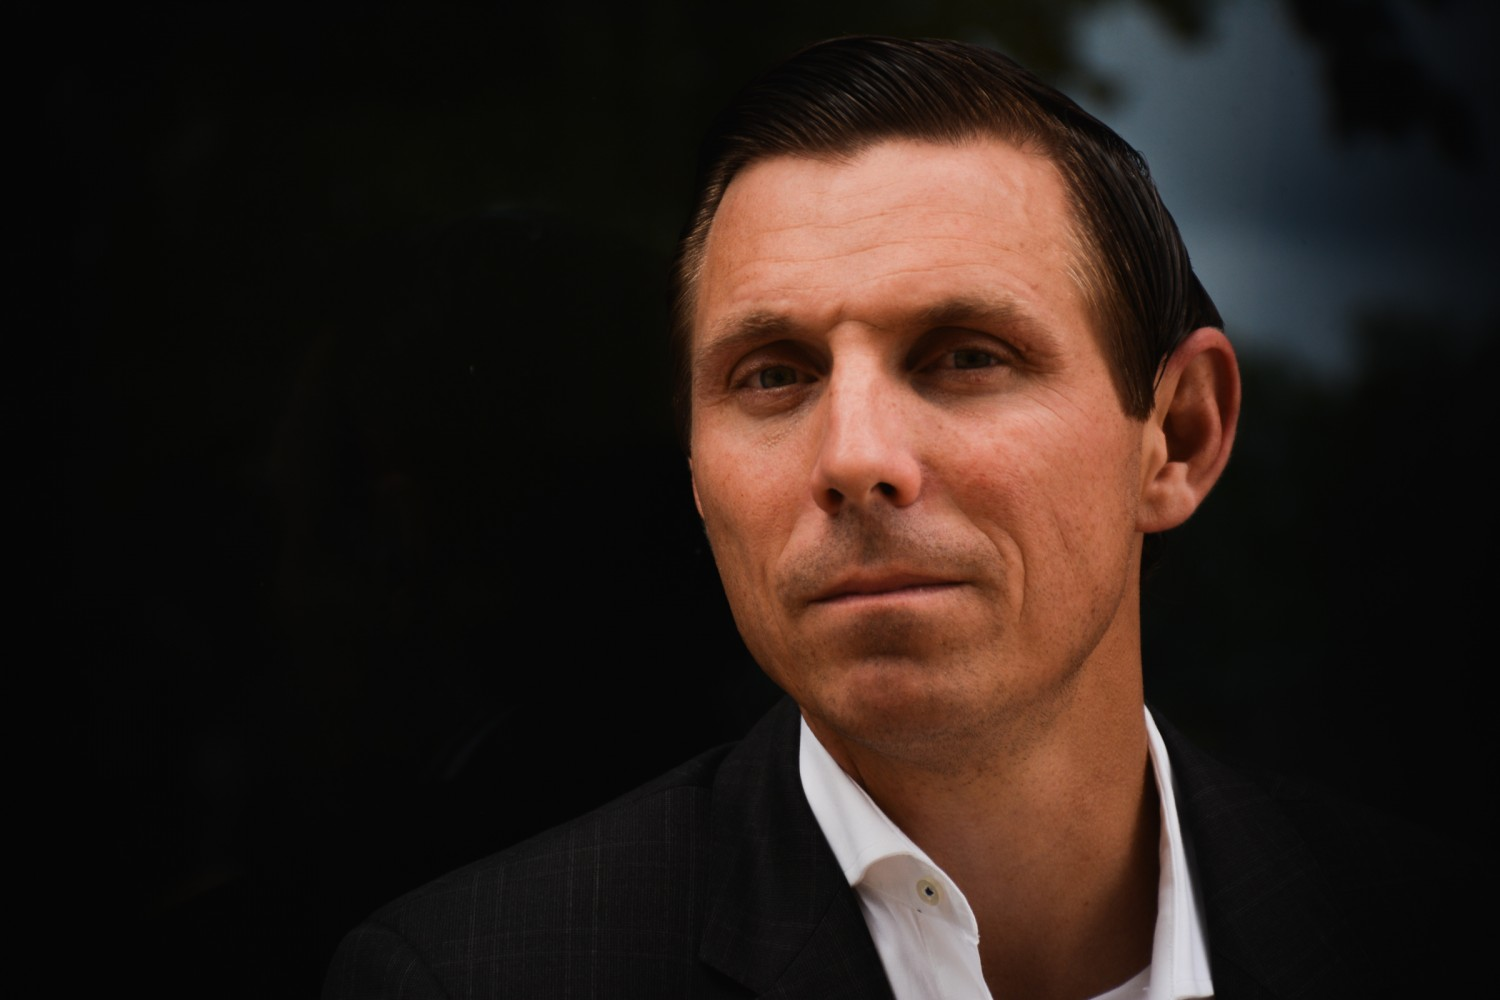 Patrick Brown wants redemption, and needs Brampton to deliver it